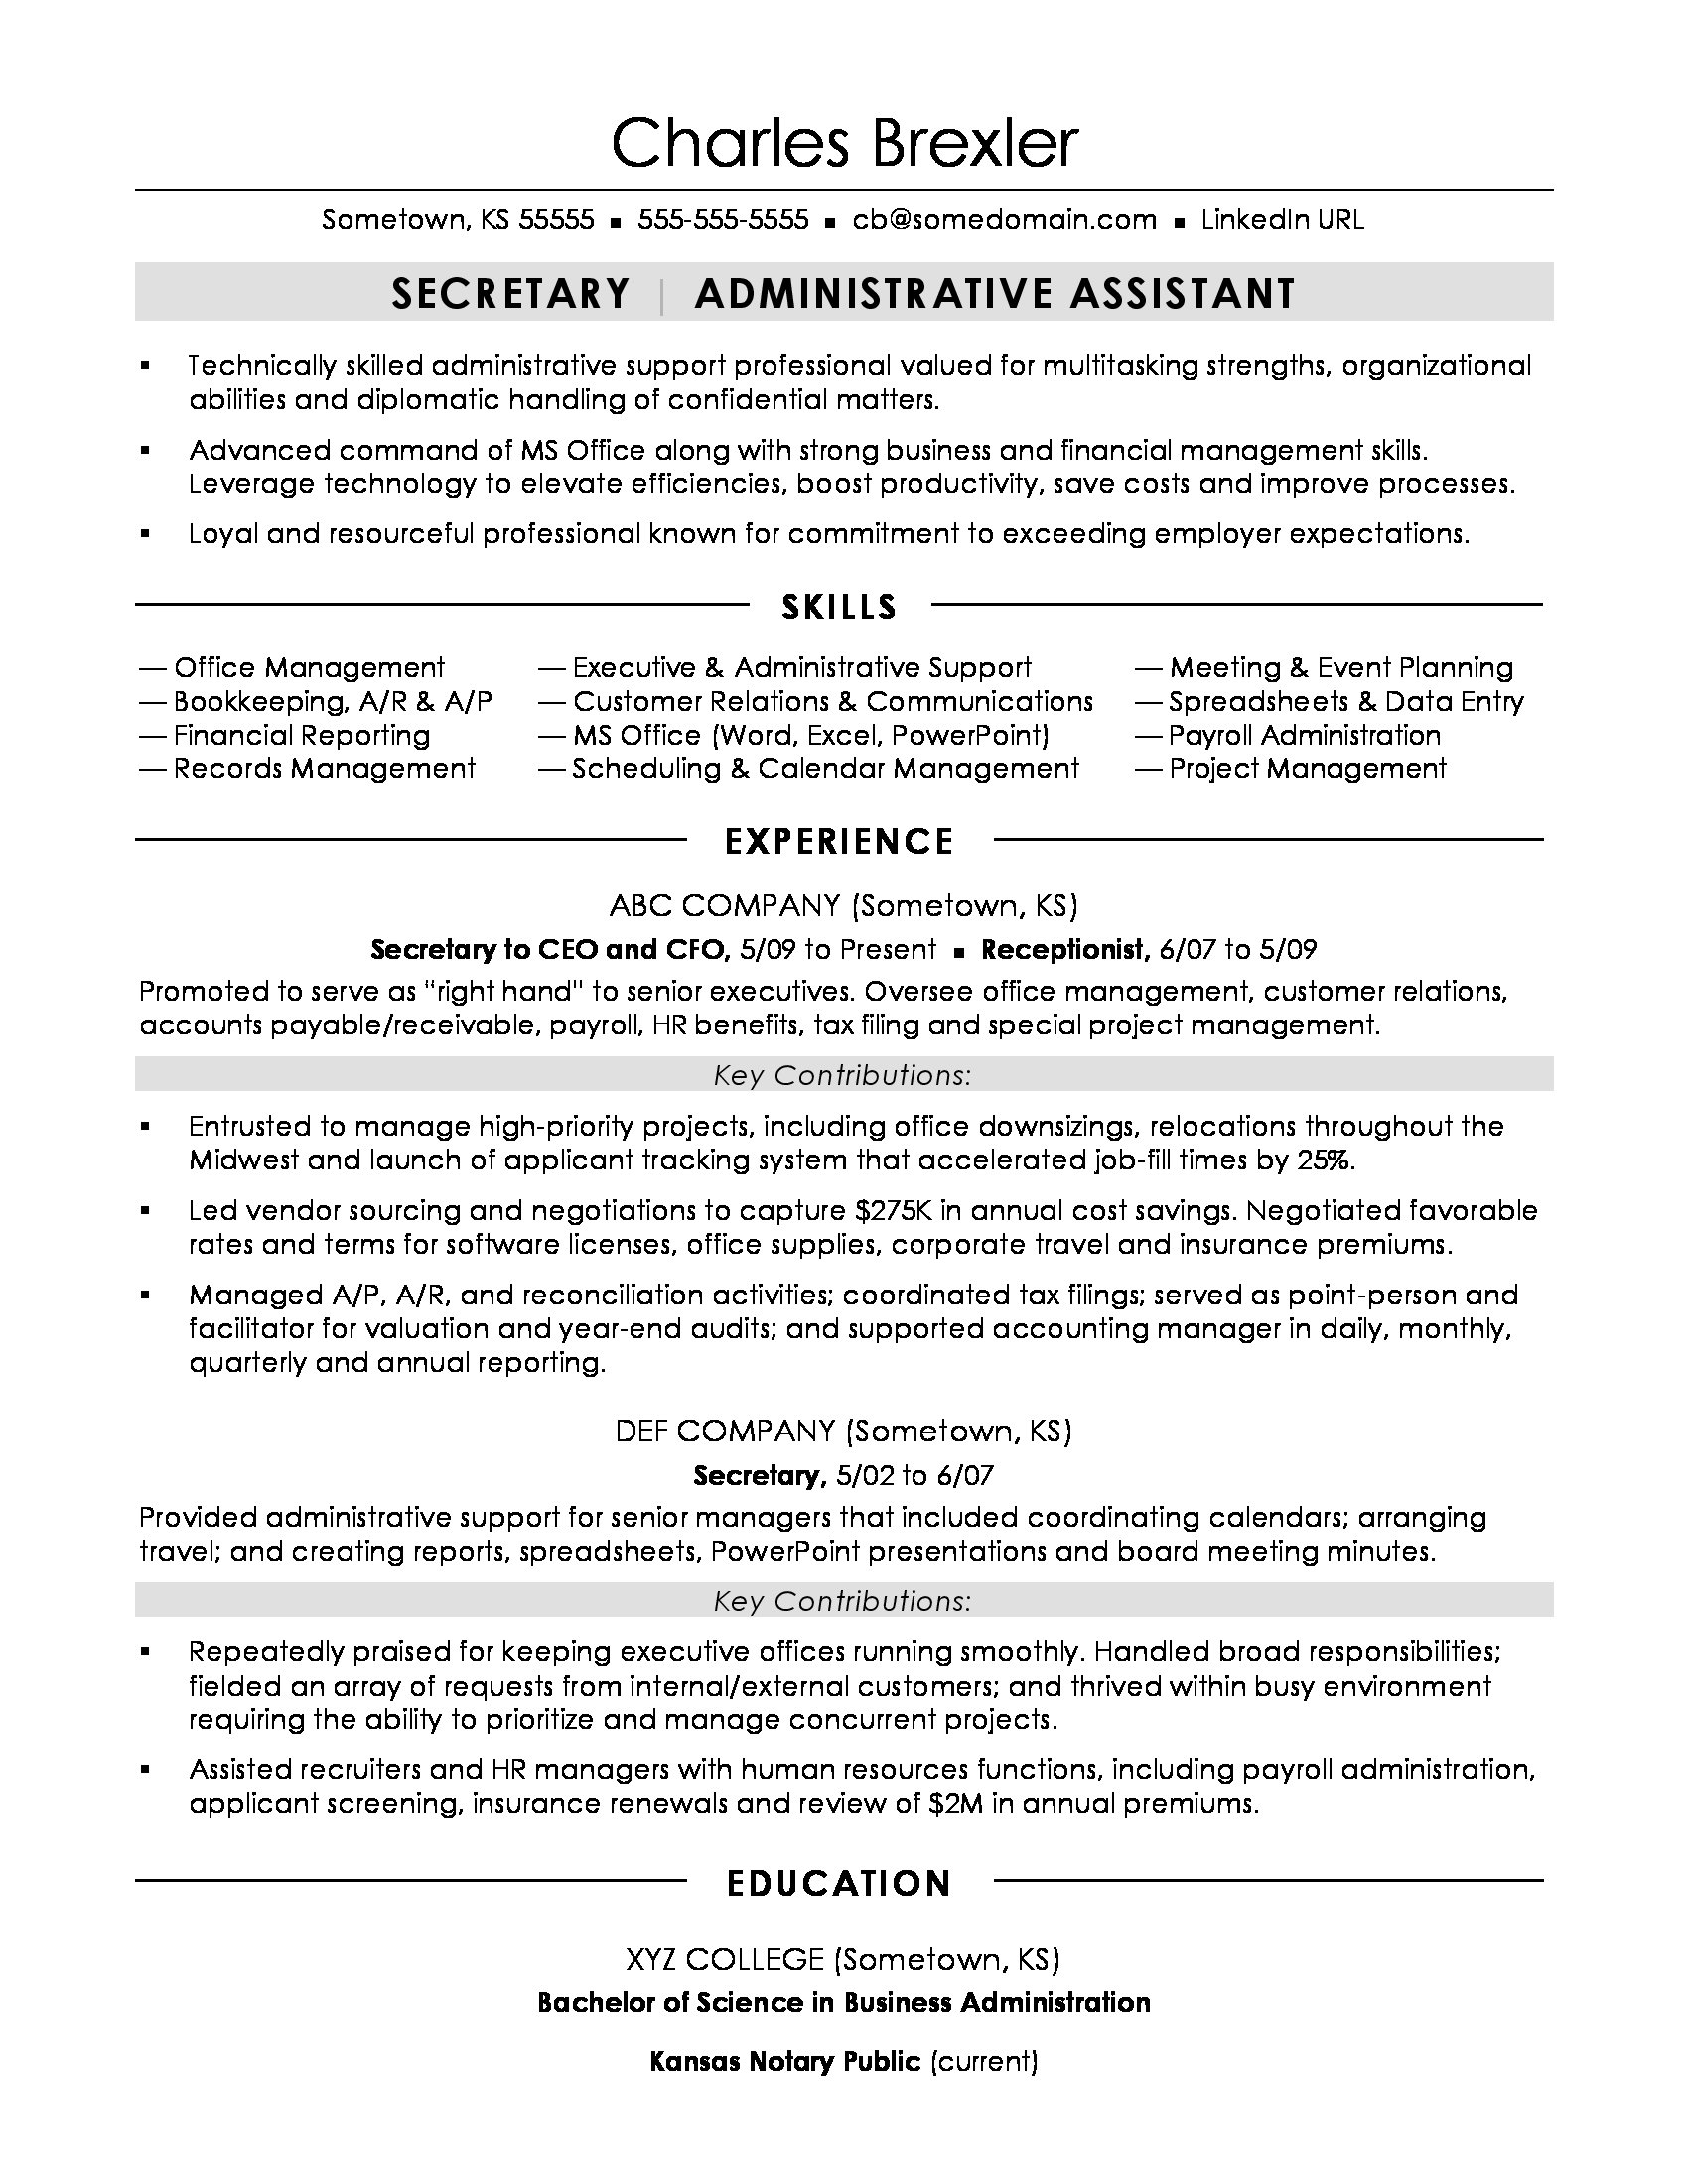 secretary resume sample - Resume For Secretary